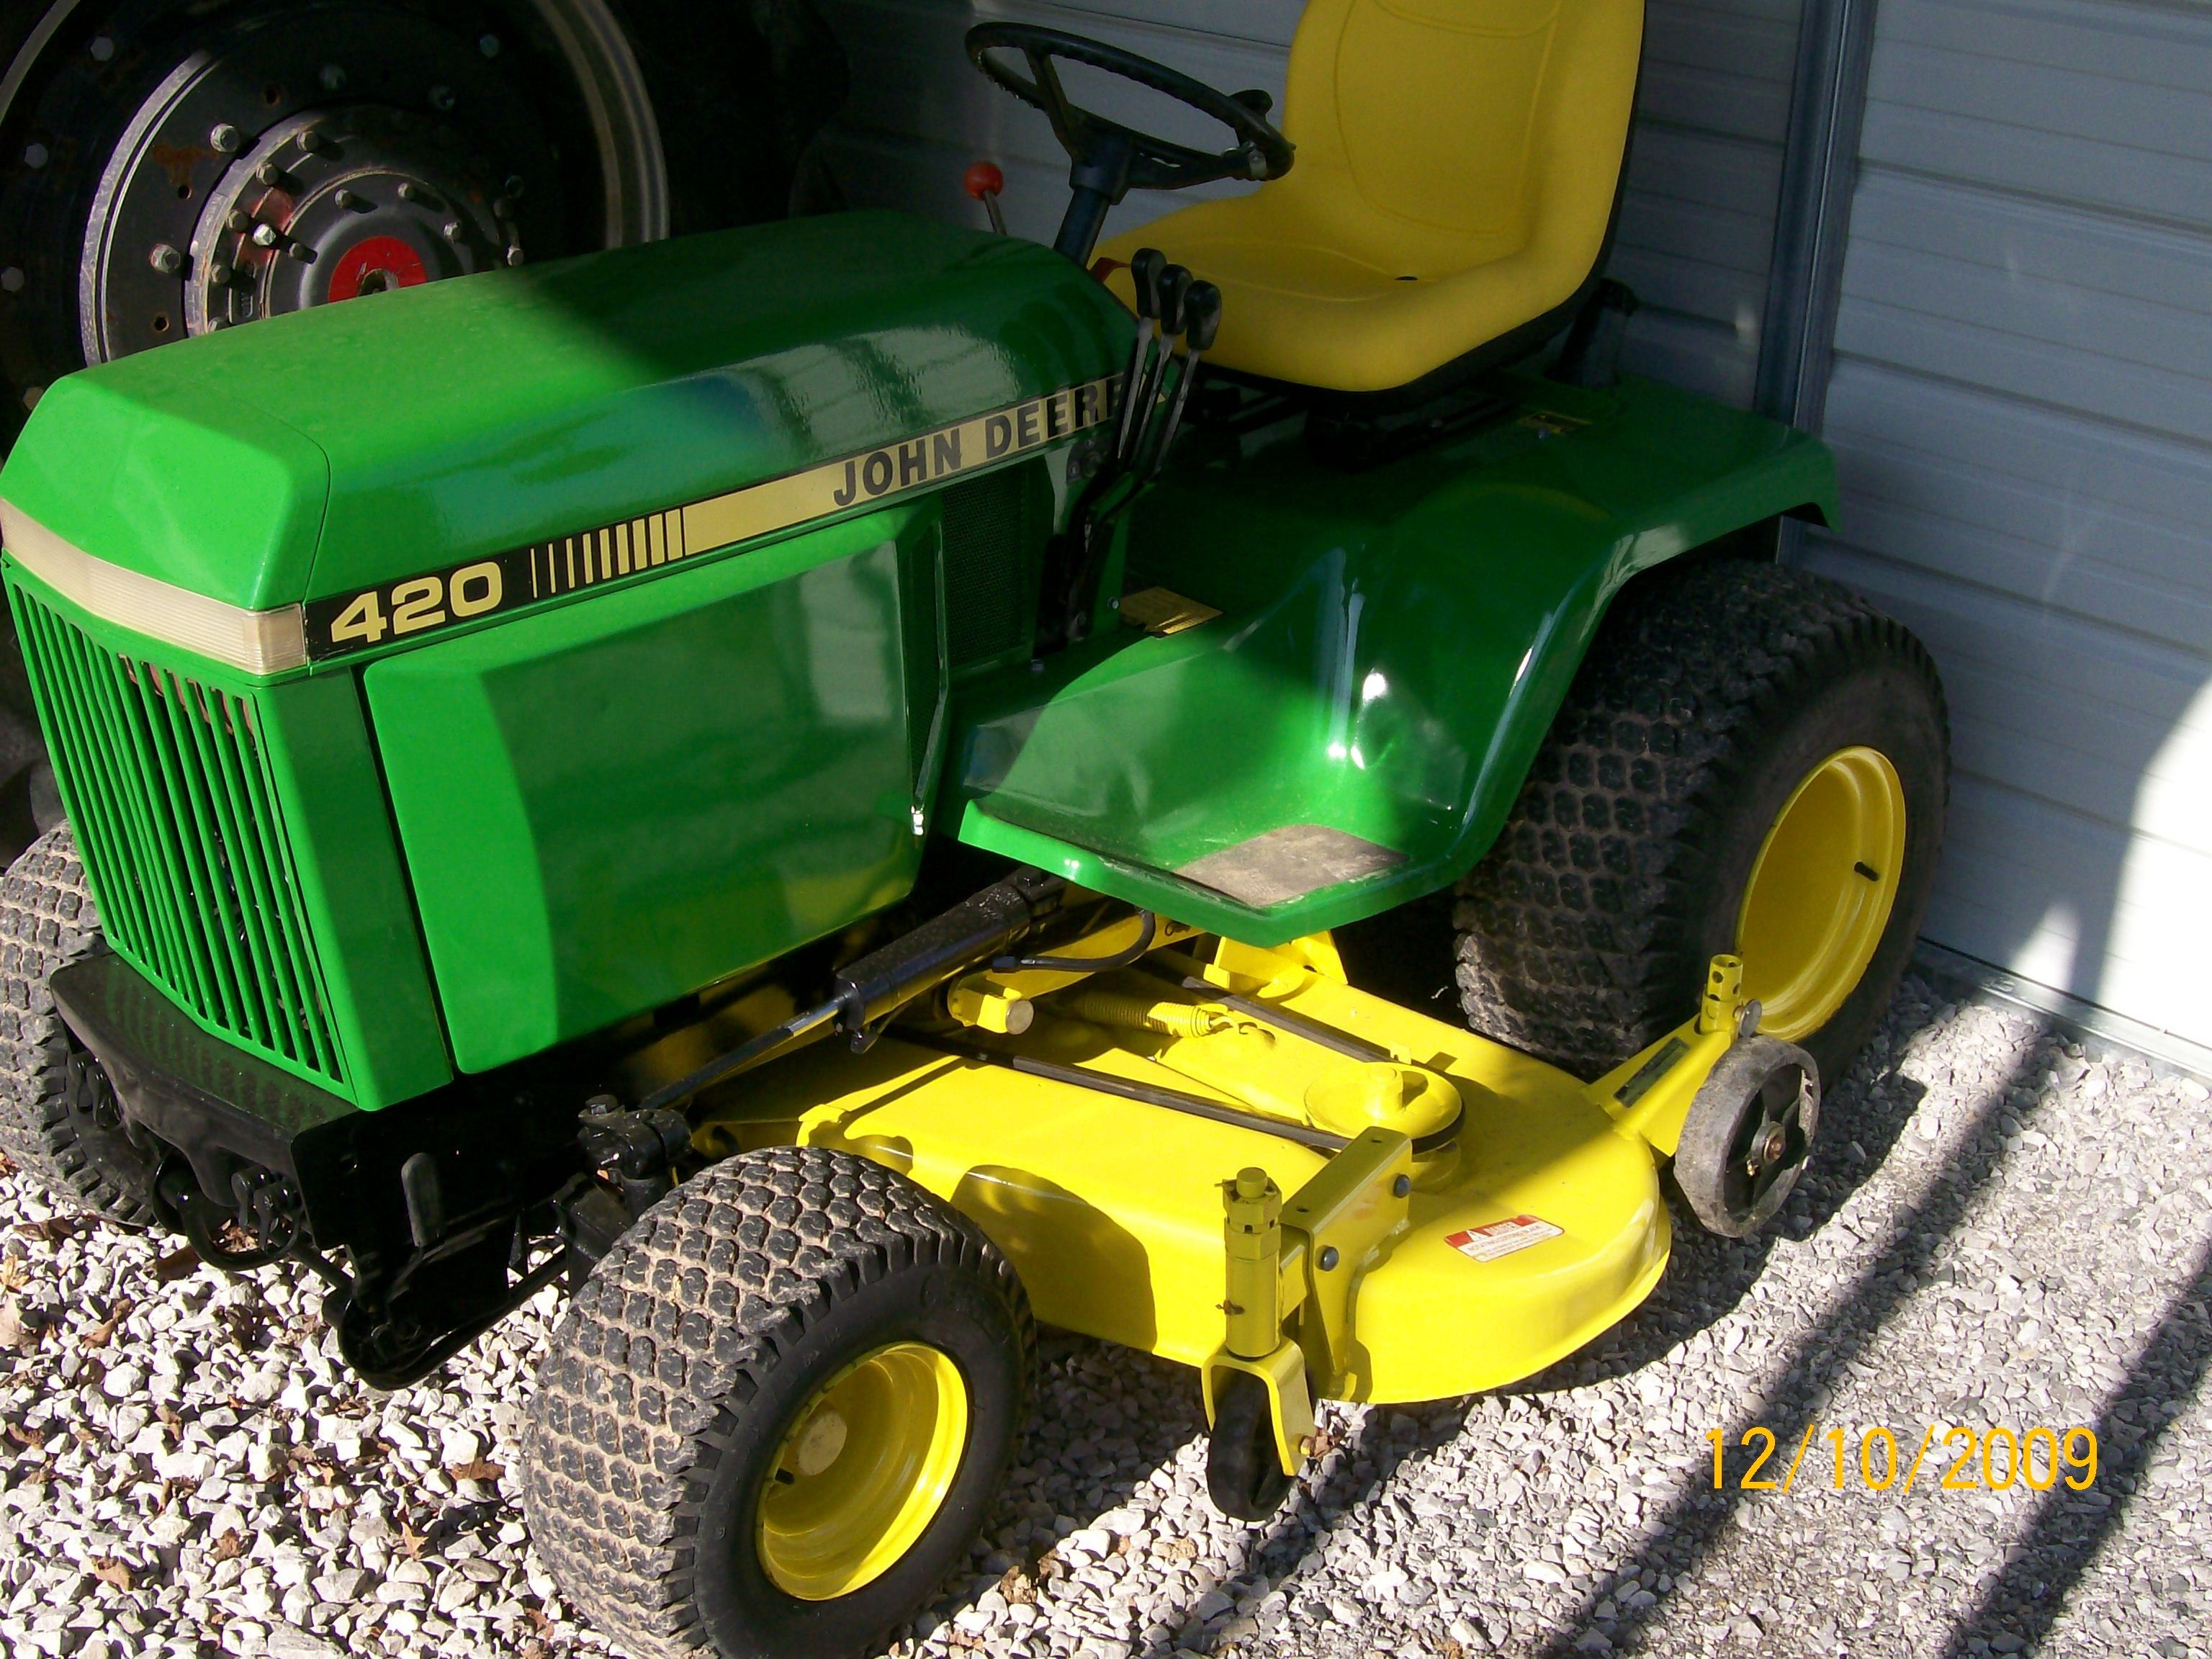 john mower dealer in tractors garden ring s tractor sons michigan auctions louis bader lawn st case deck deere